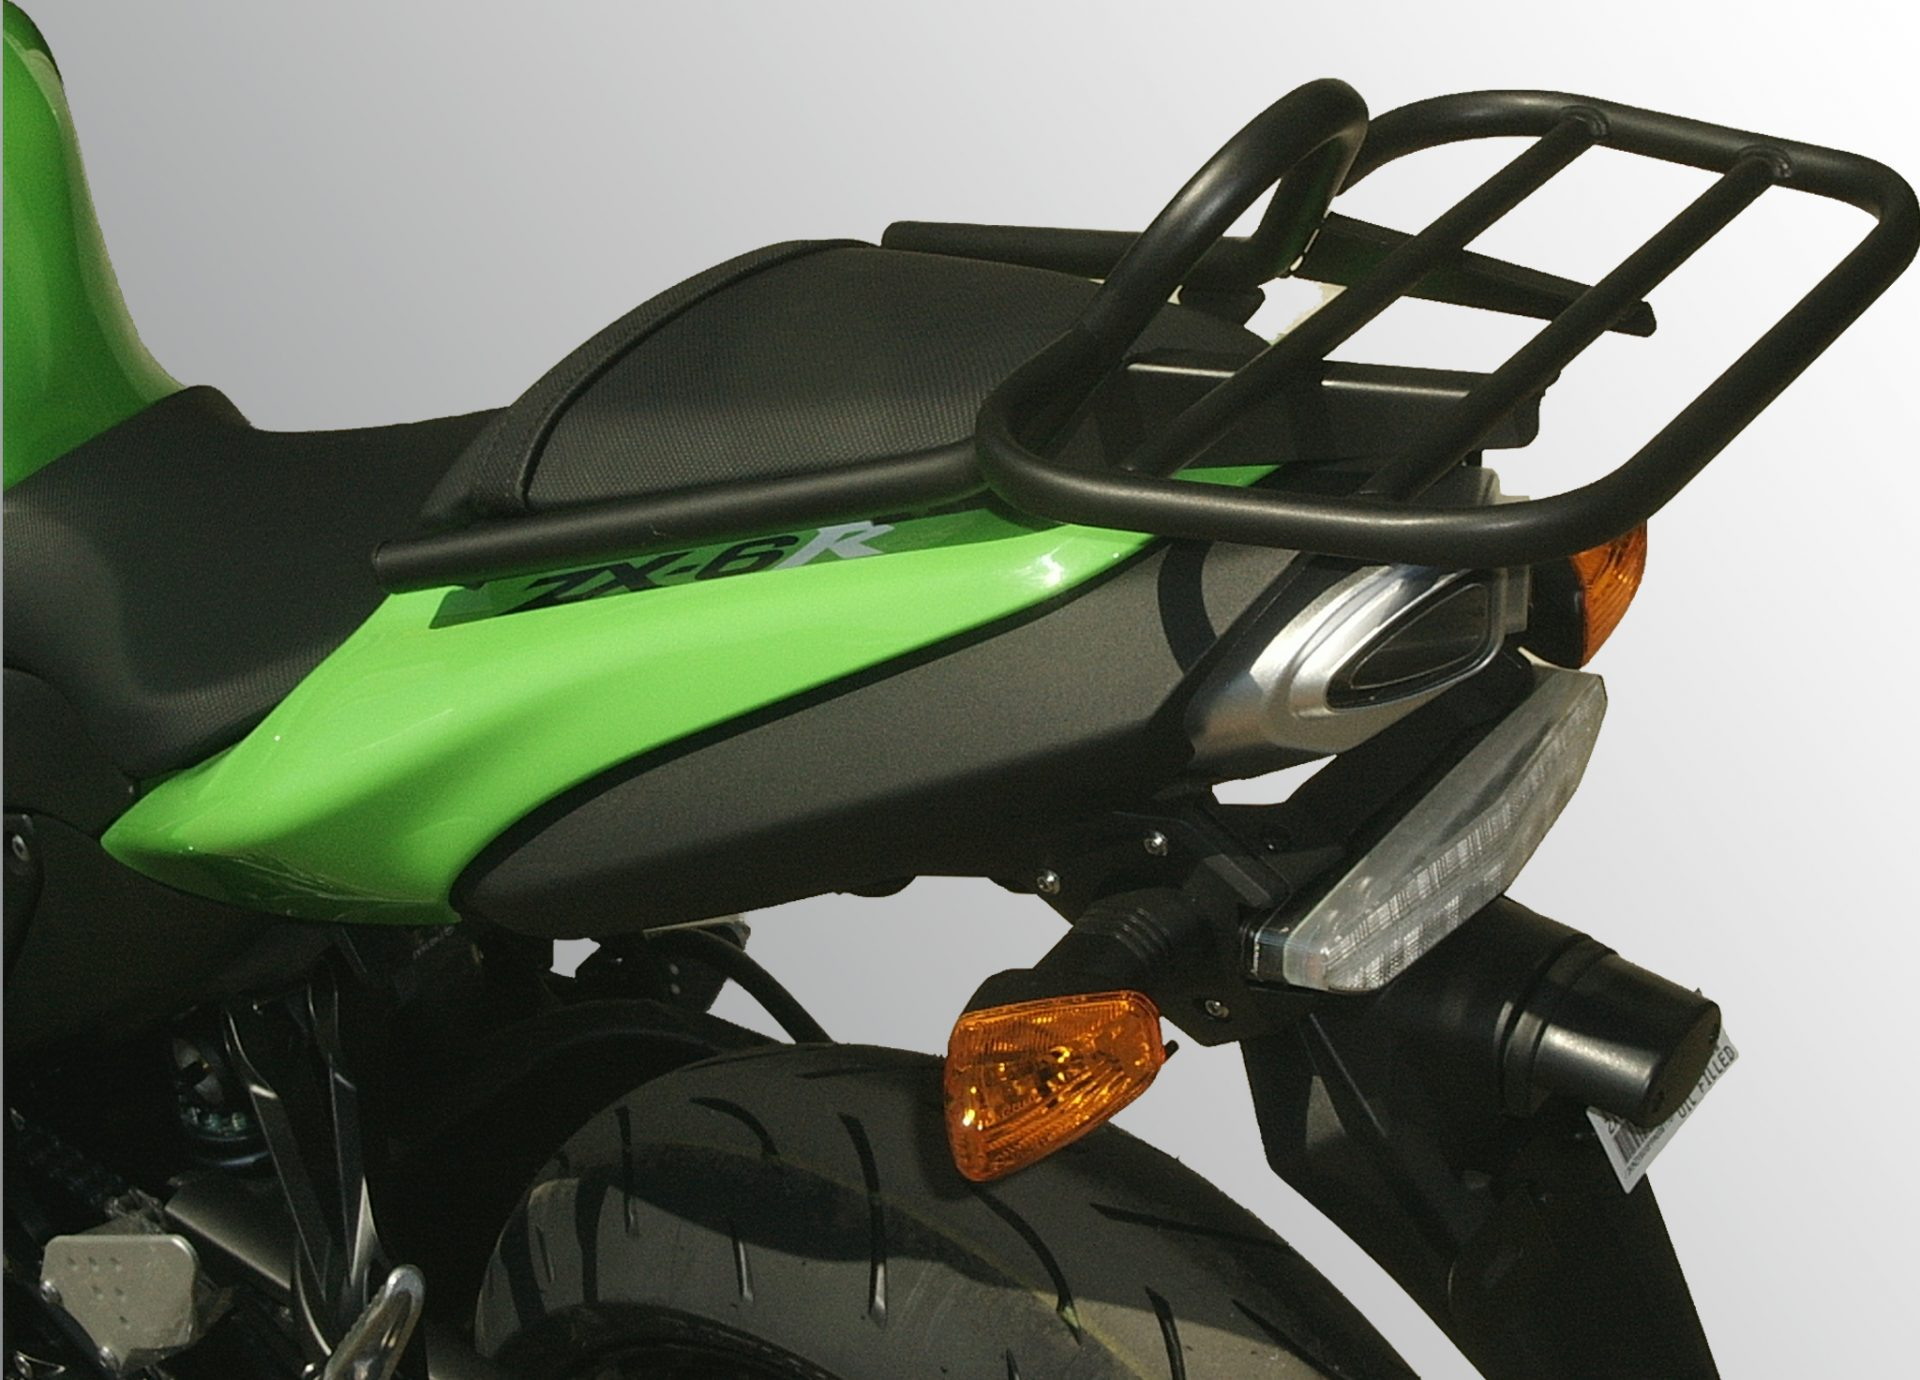 Kawasaki ZX6R P7-P8 (2007-2008) Luggage Carrier In Black